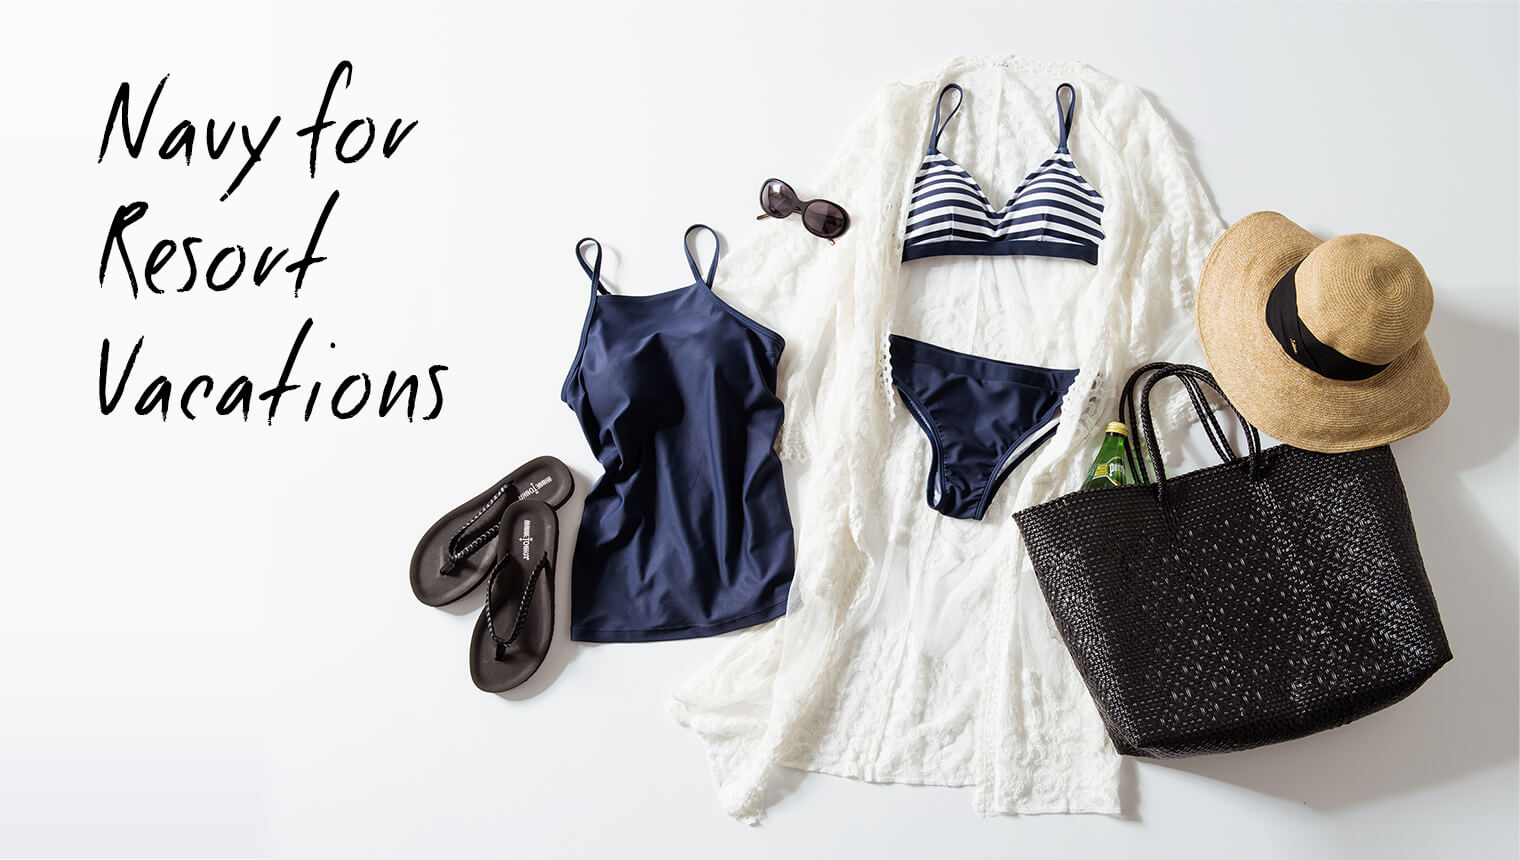 Navy for Resort Vacations